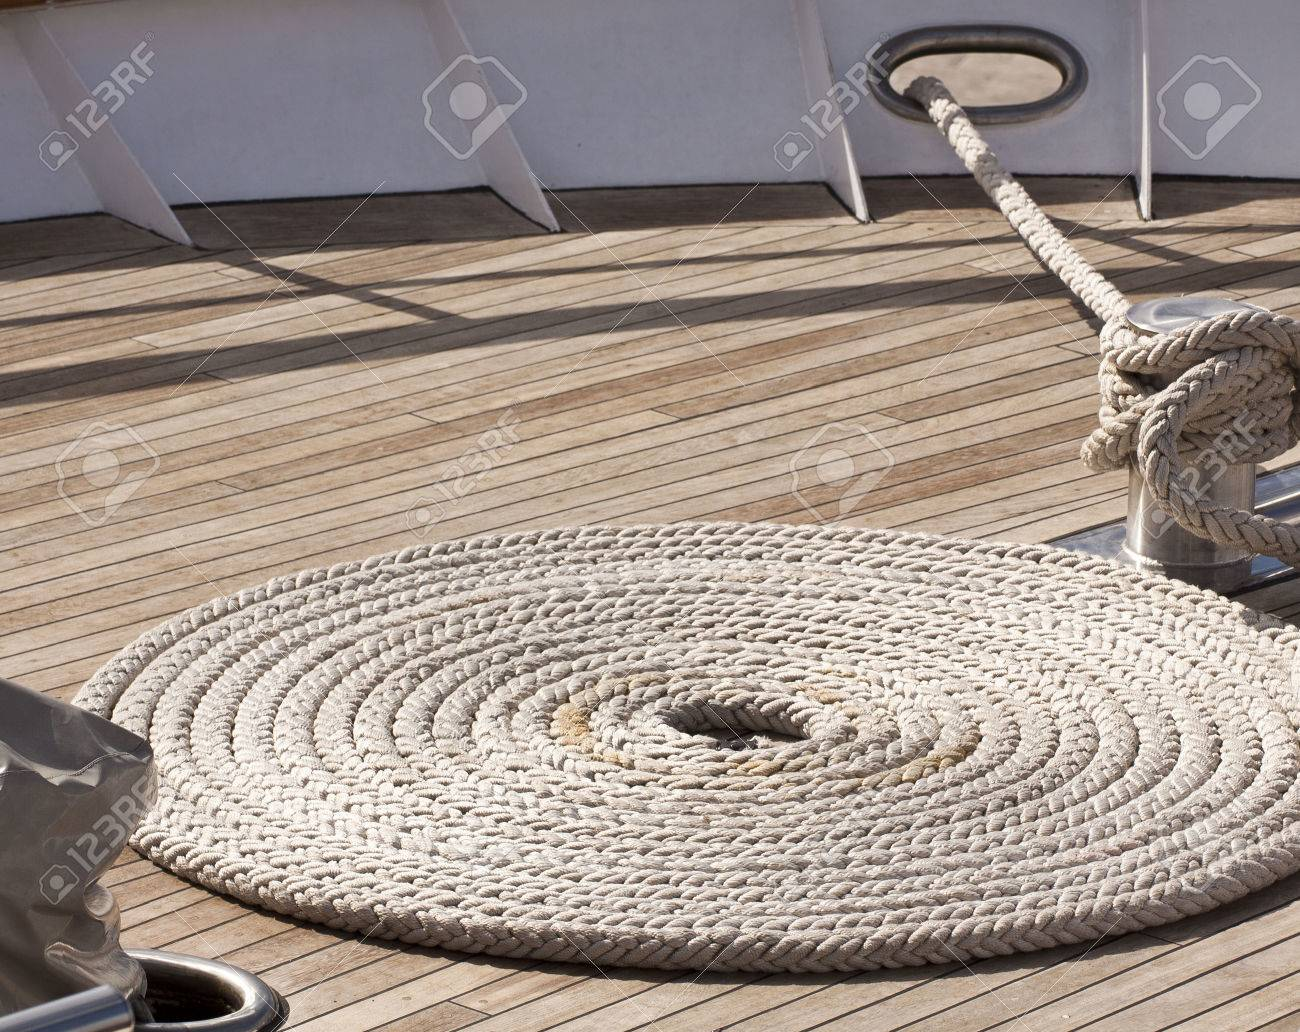 Yacht deck with anchor line in spiral shape Stock Photo - 33390805